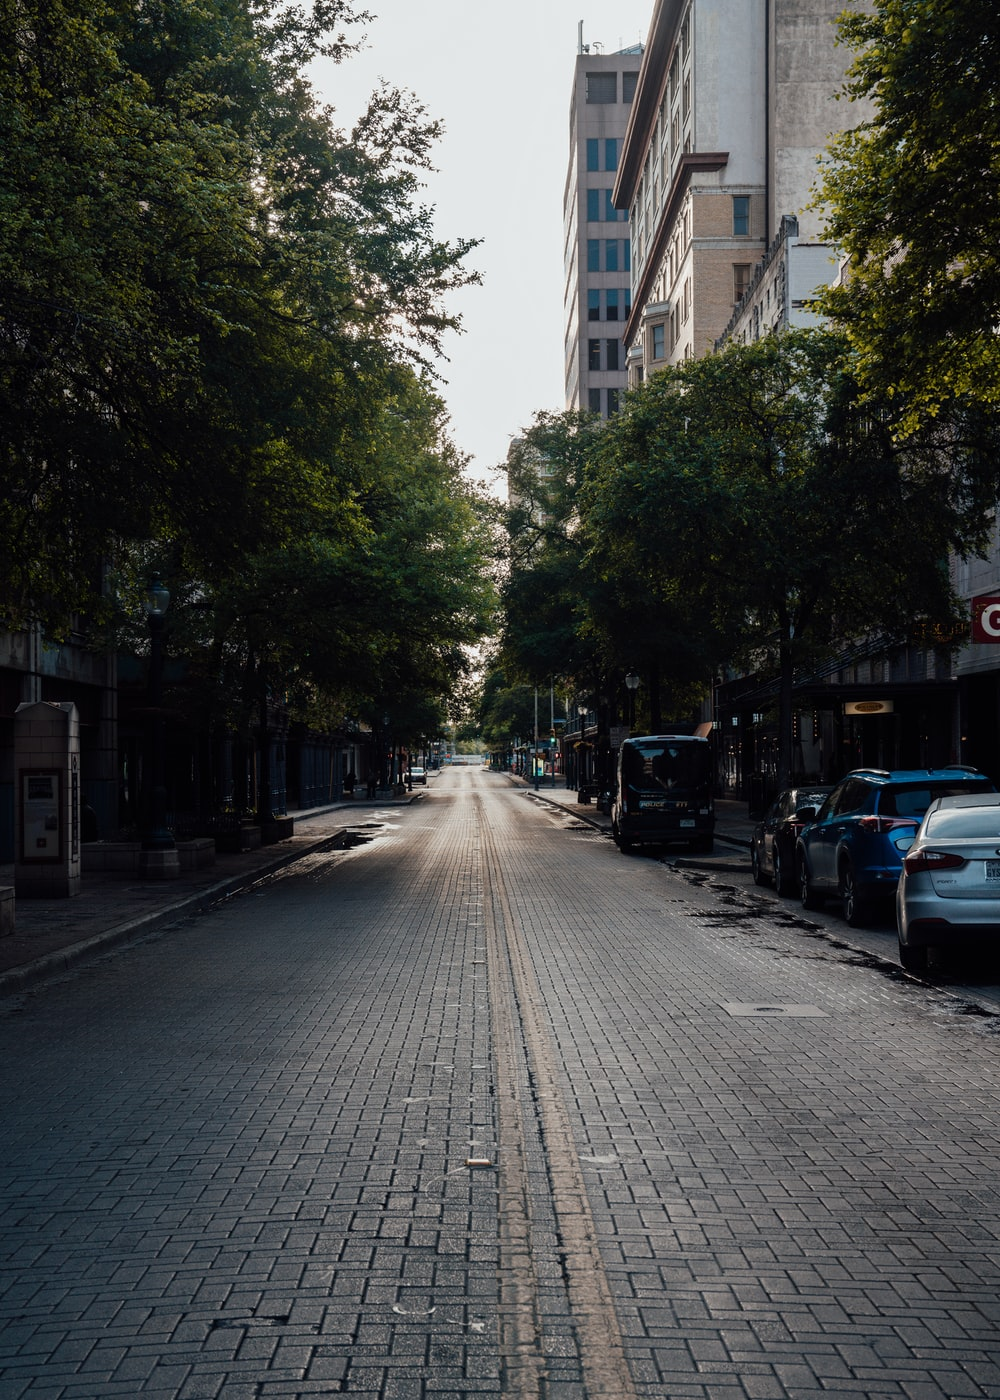 cars parked on side of the road during daytime